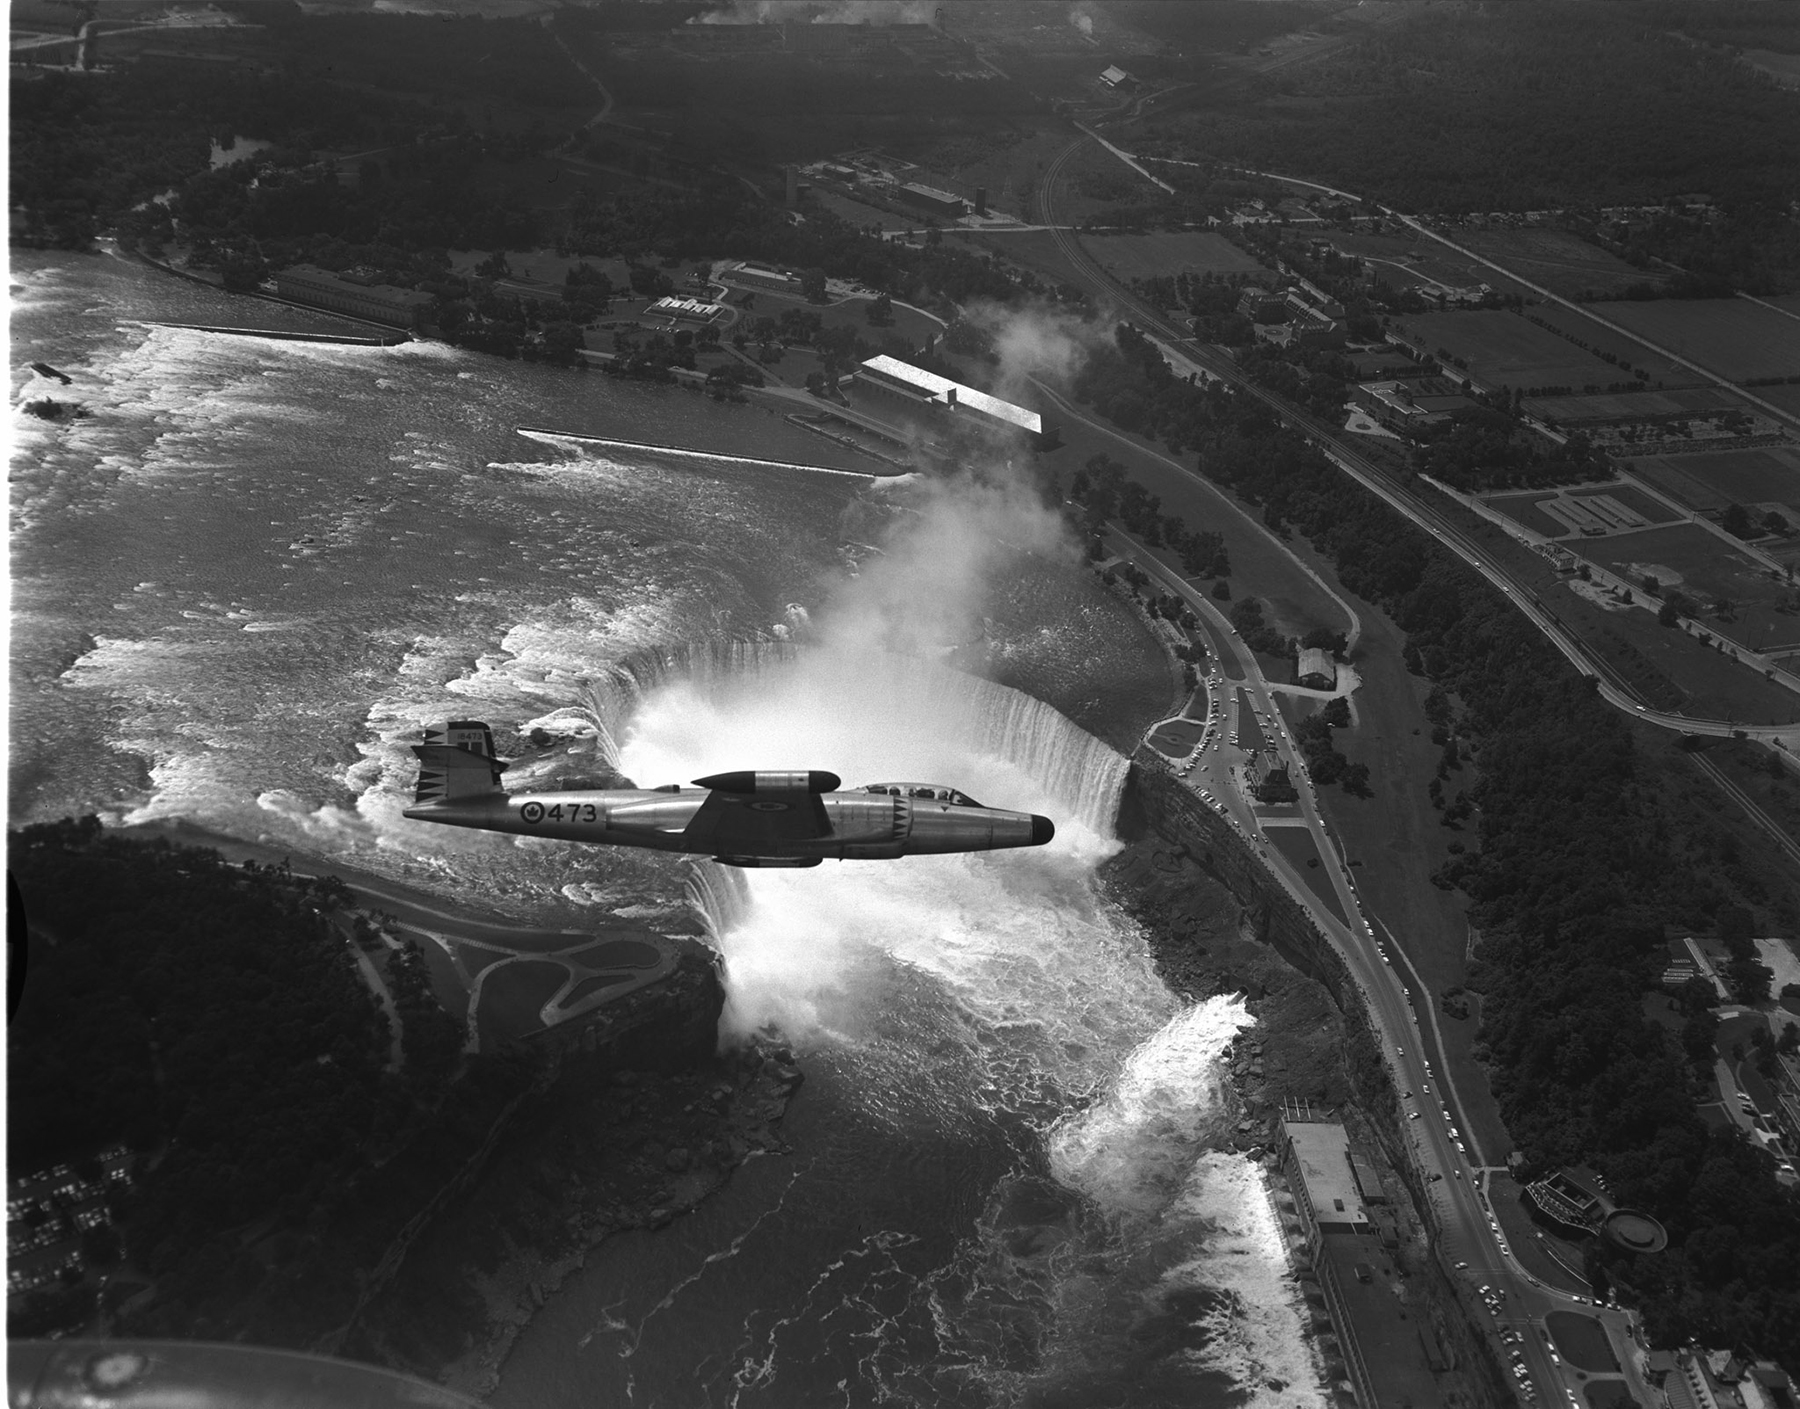 A 423 Squadron CF-100 Canuck aircraft overflies Horseshoe Falls in Niagara Falls, Ontario, in an undated photograph. PHOTO: DND Archives, PL-95055